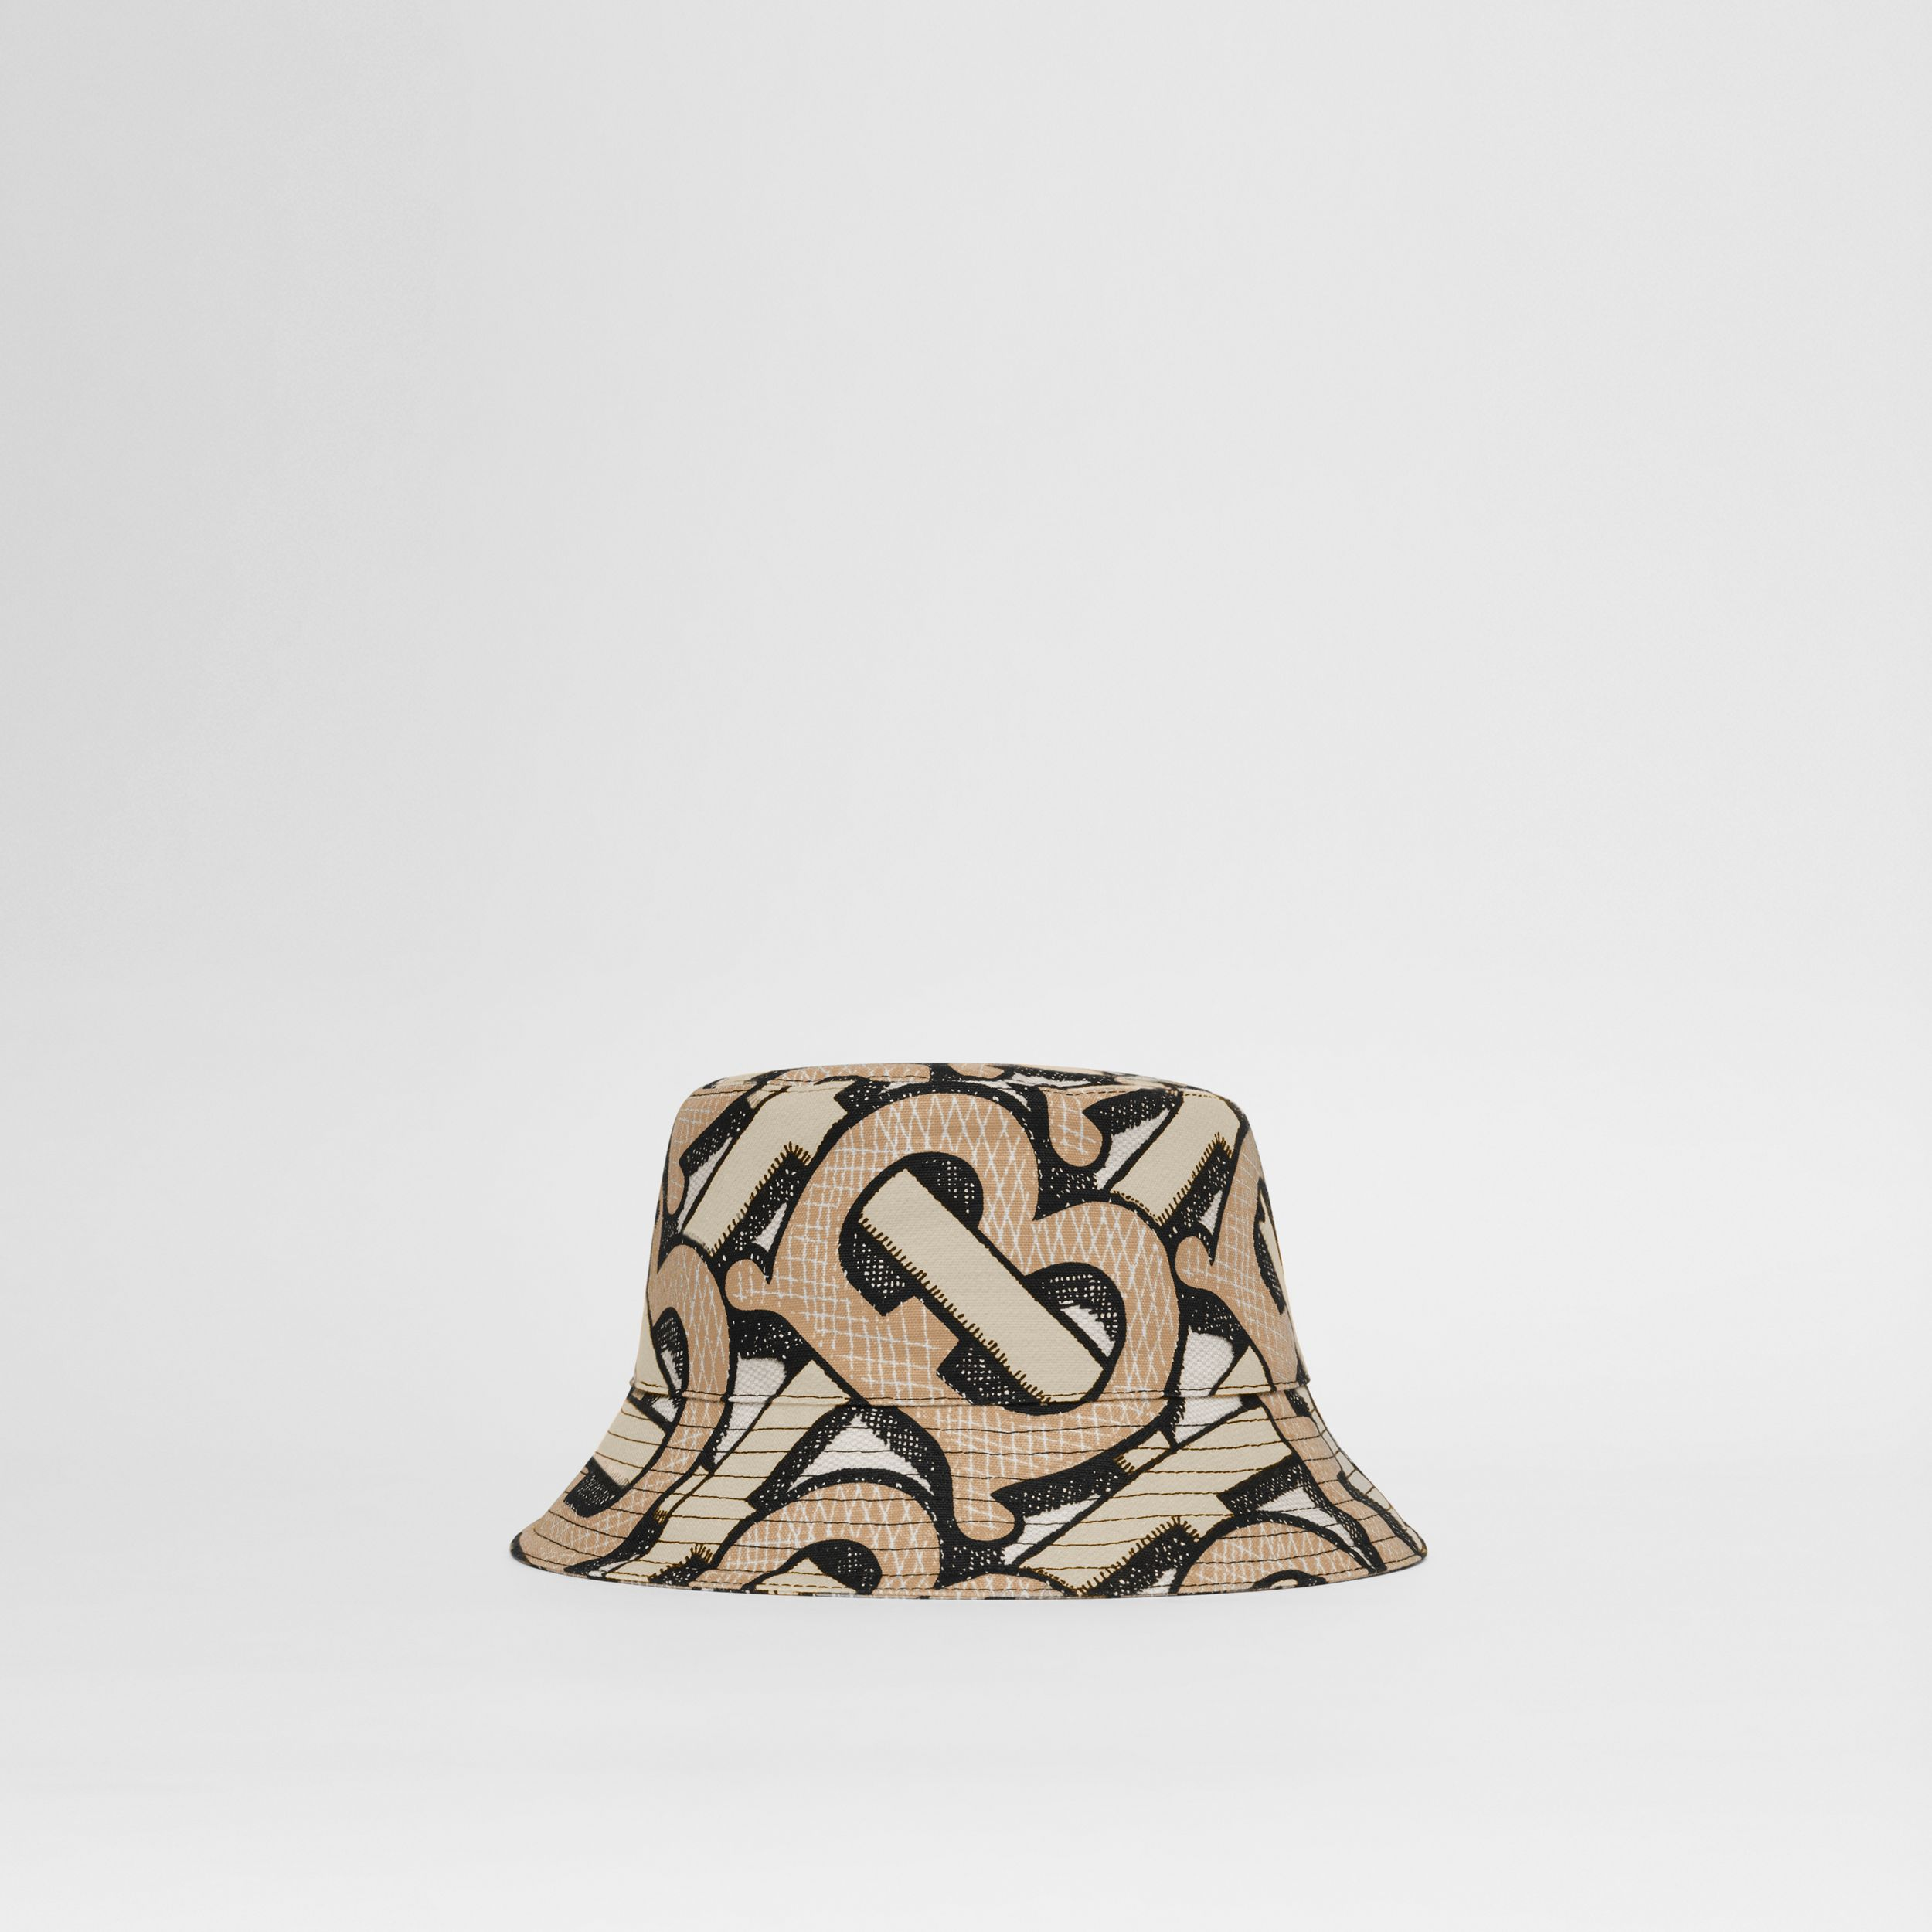 Monogram Print Cotton Canvas Bucket Hat in Dark Beige | Burberry Singapore - 1